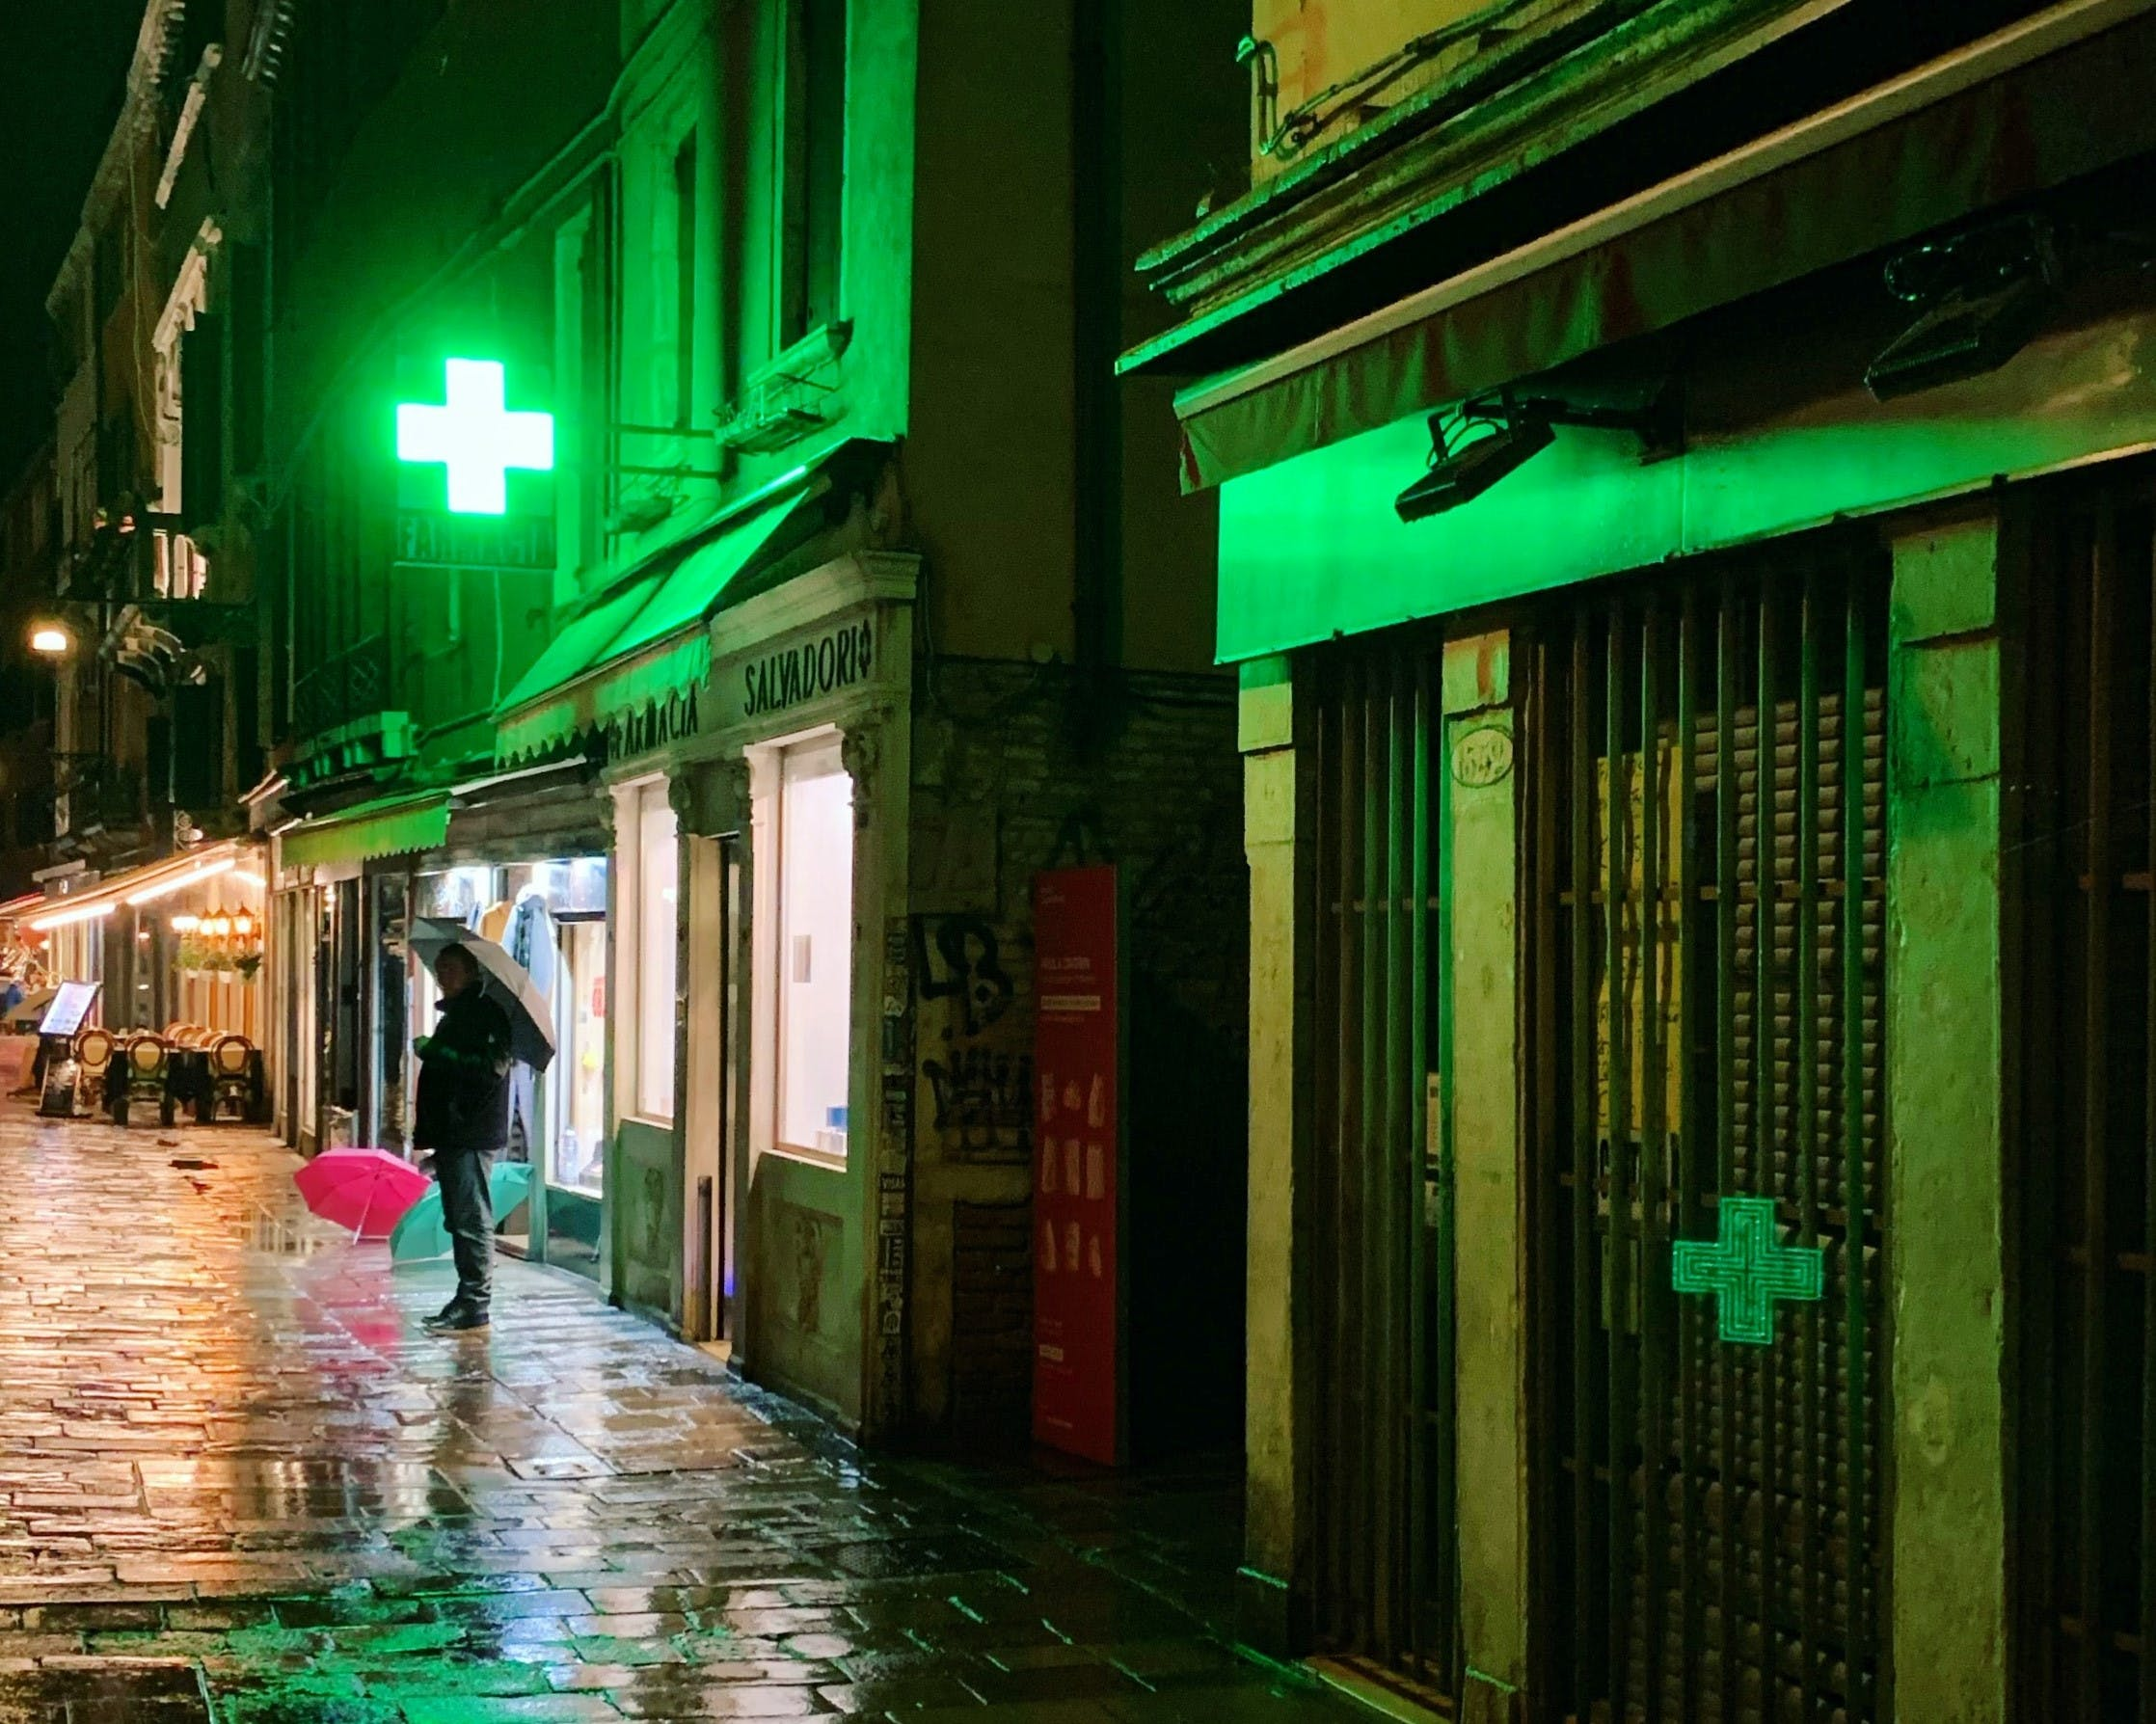 A pharmacy with a neon green cross sign on a rainy street at night